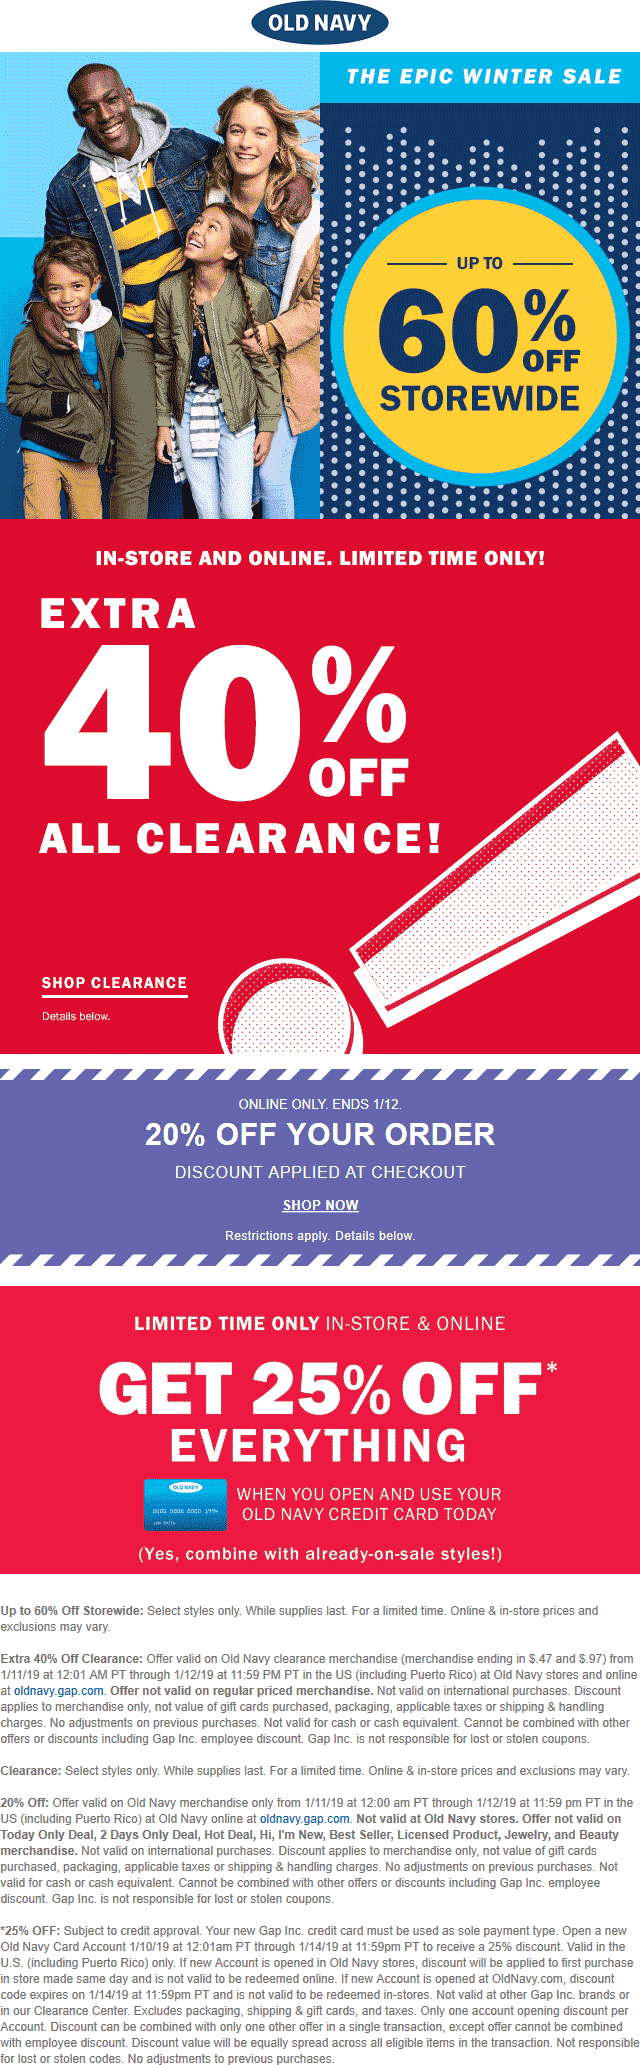 OldNavy.com Promo Coupon Extra 40% off clearance & more at Old Navy, ditto online